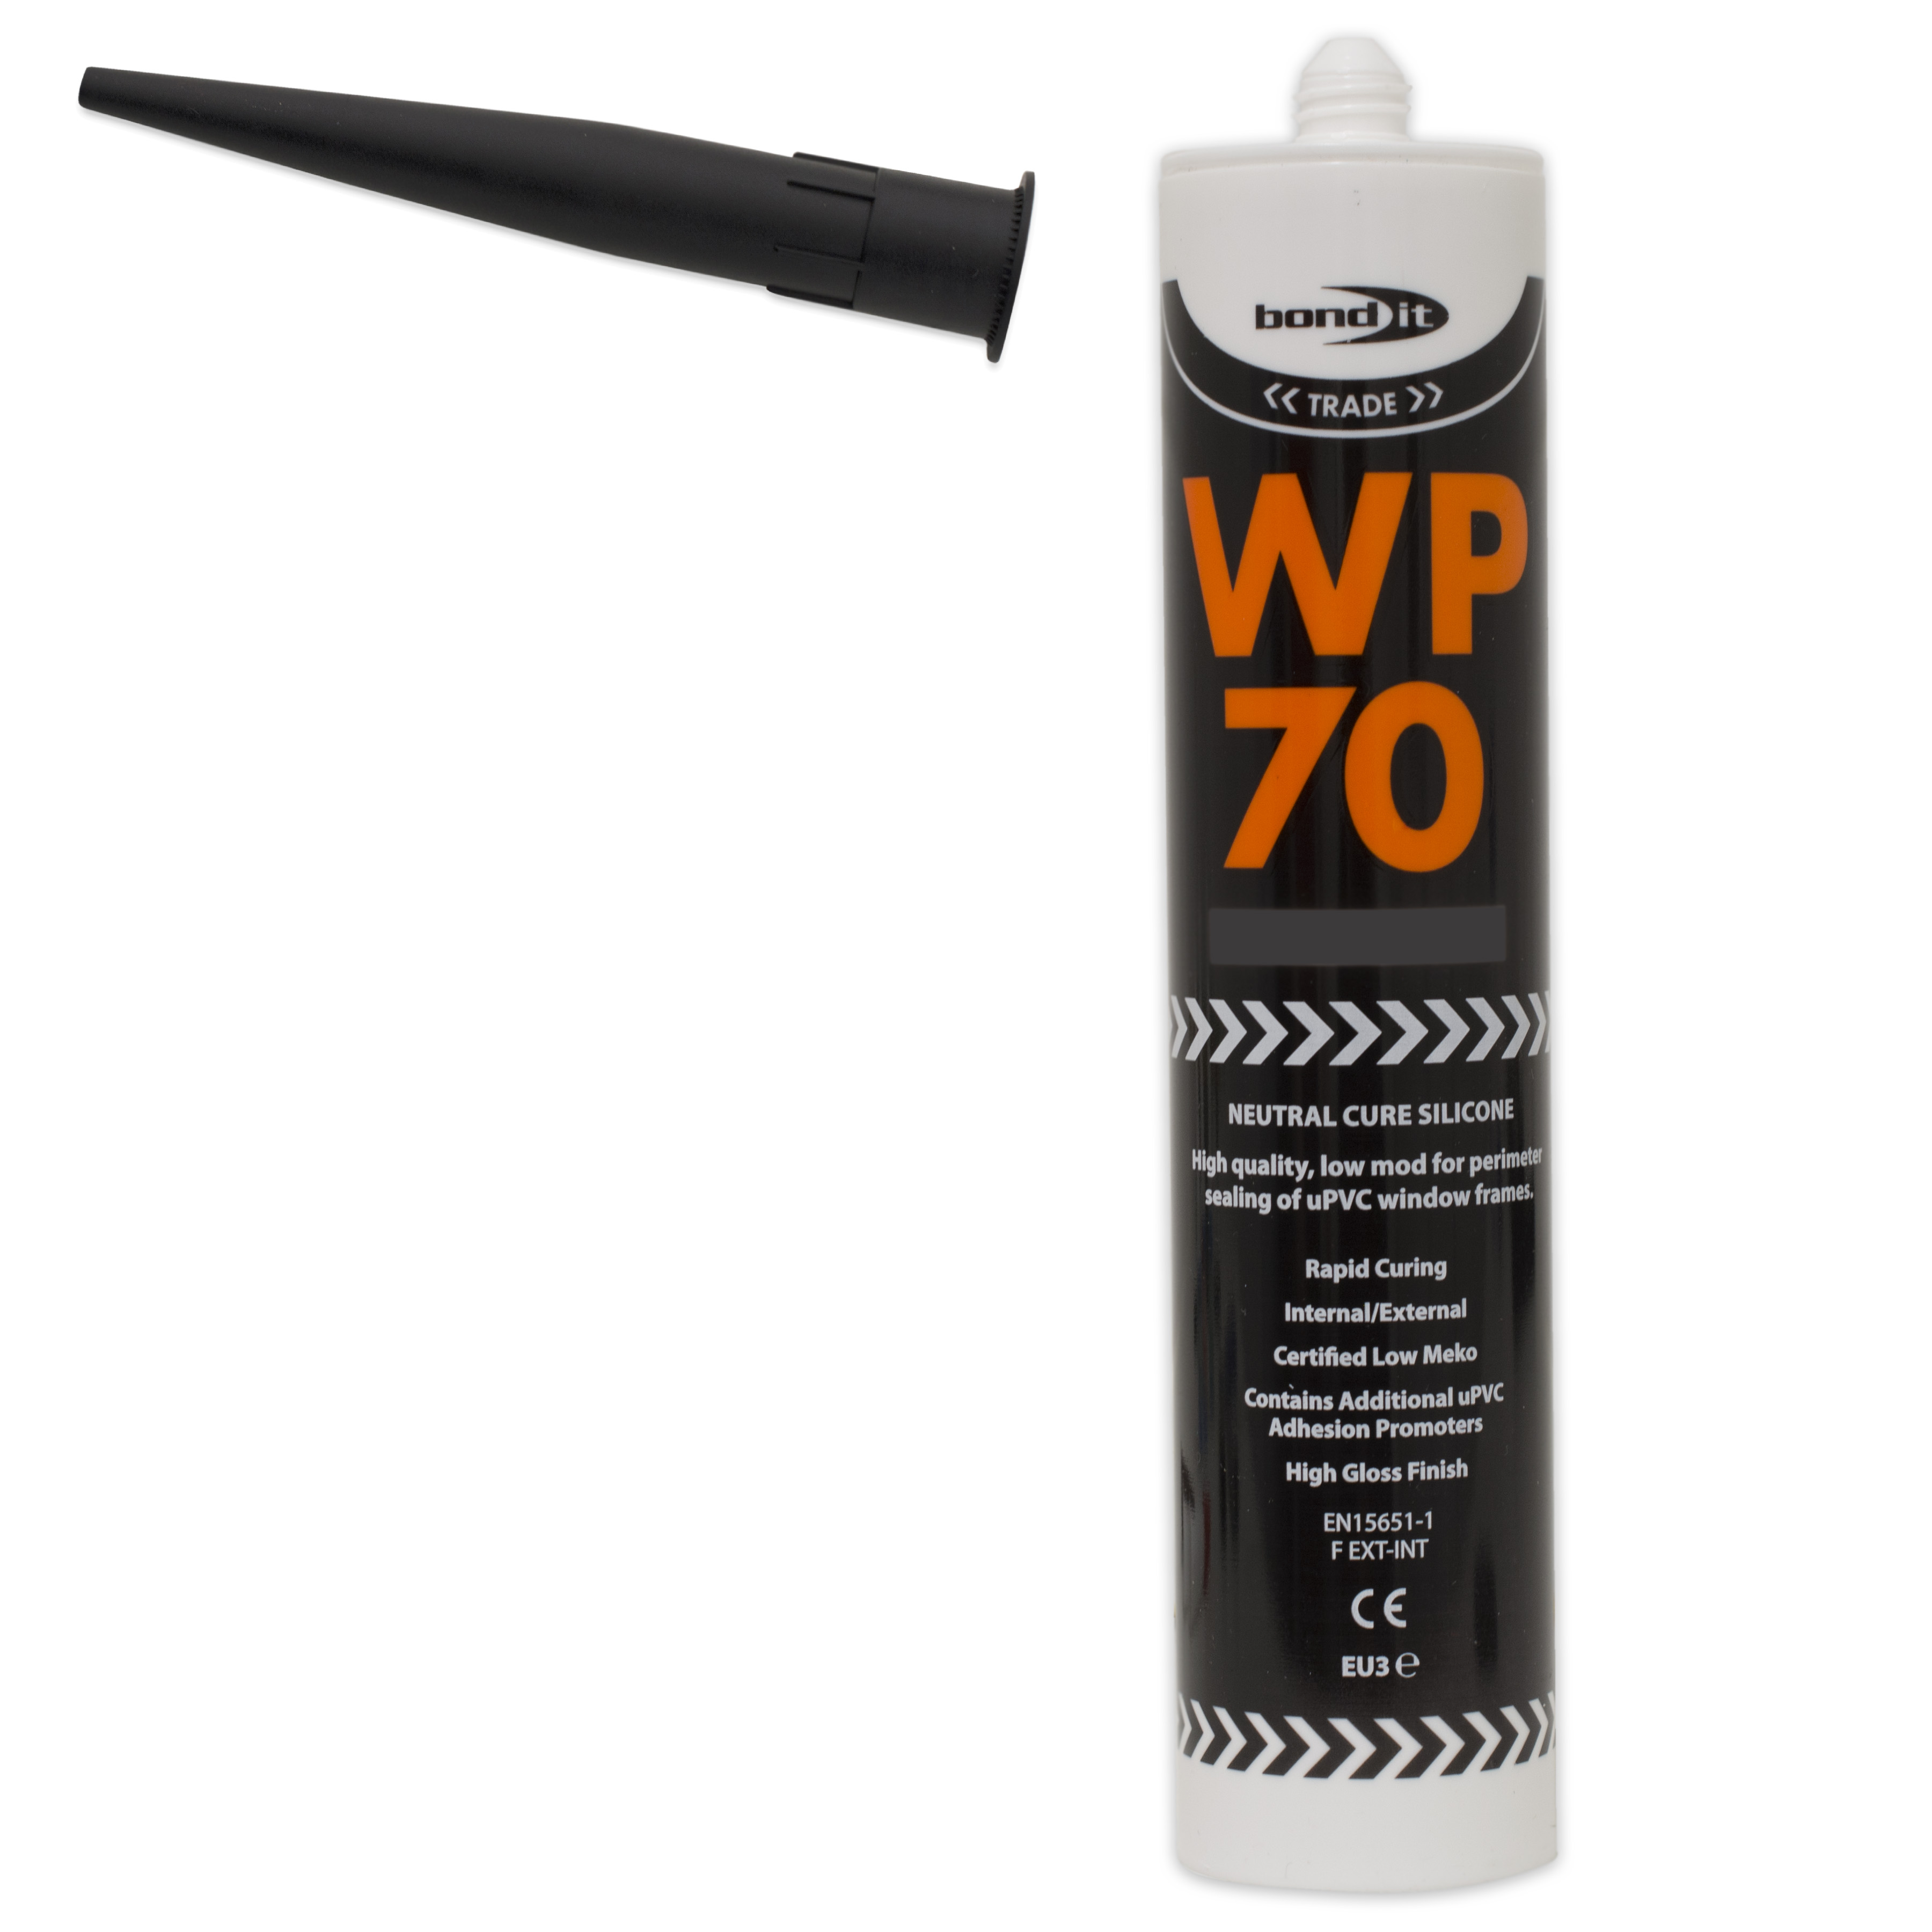 Wp70 Silicone Sealant Low Modulus Neutral Cure Lmn General